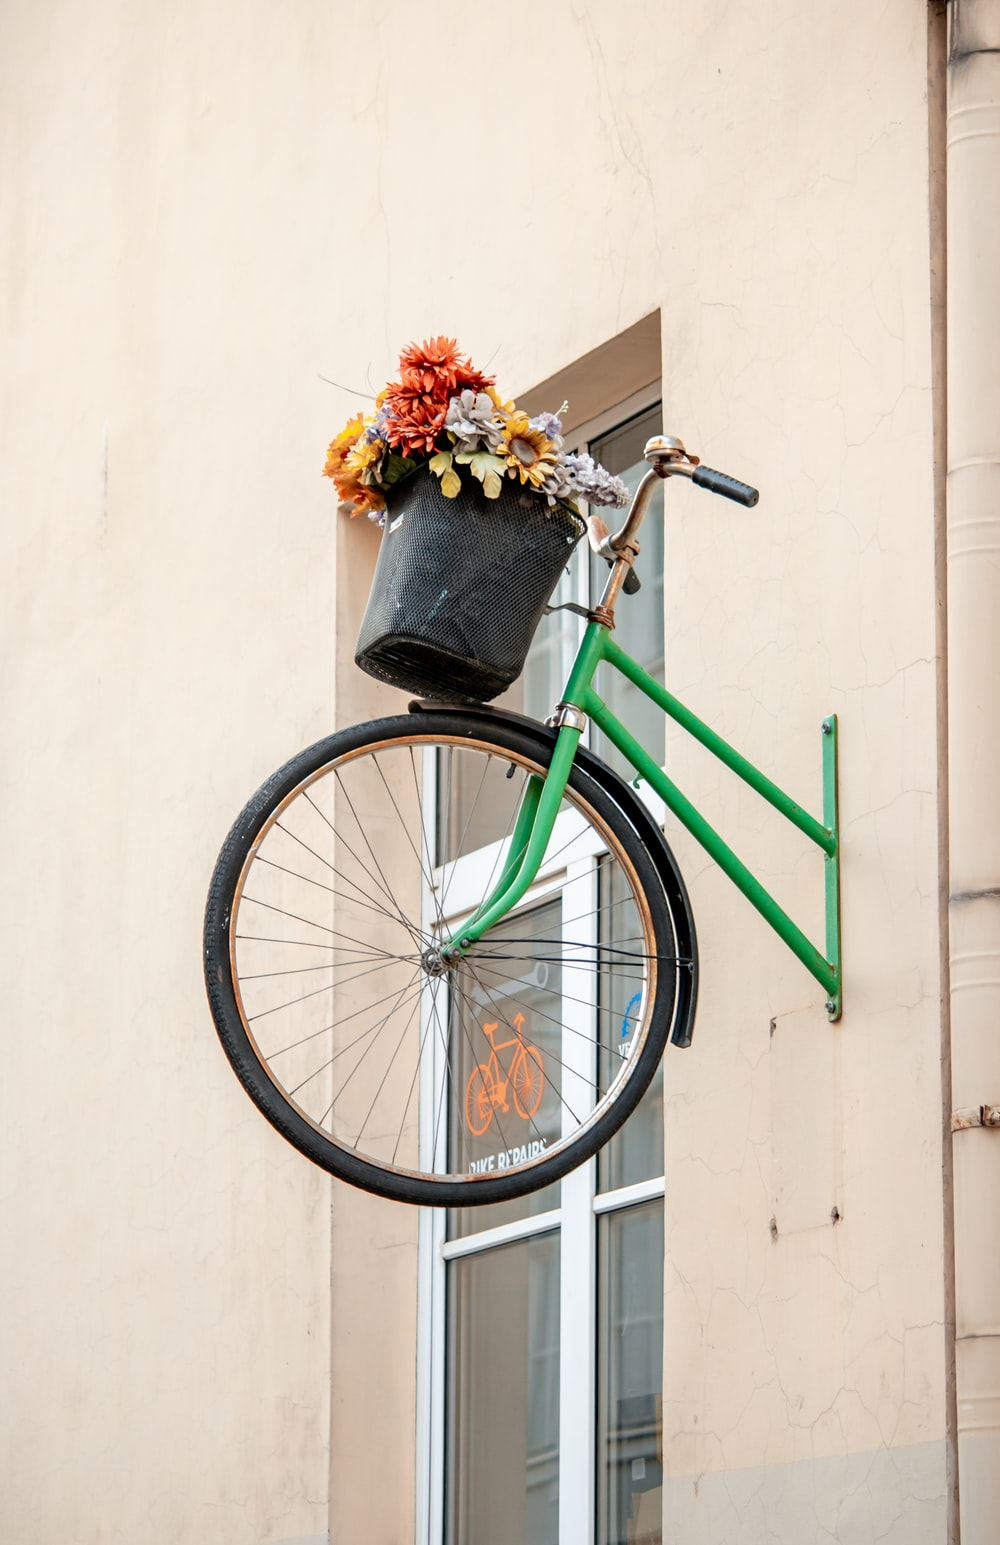 green city bike with flowers